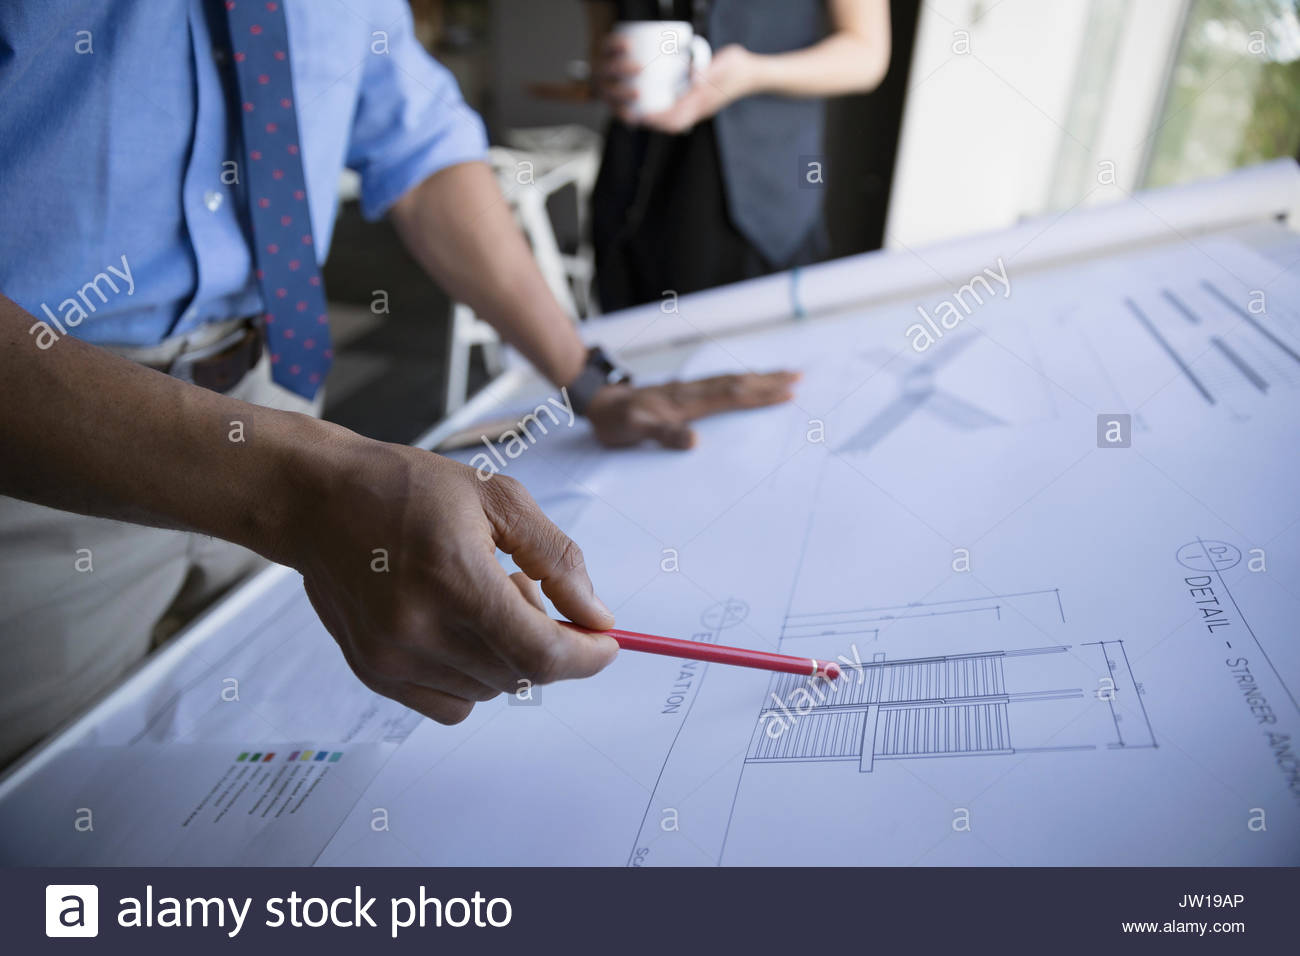 Male architect reviewing blueprints in office - Stock Image